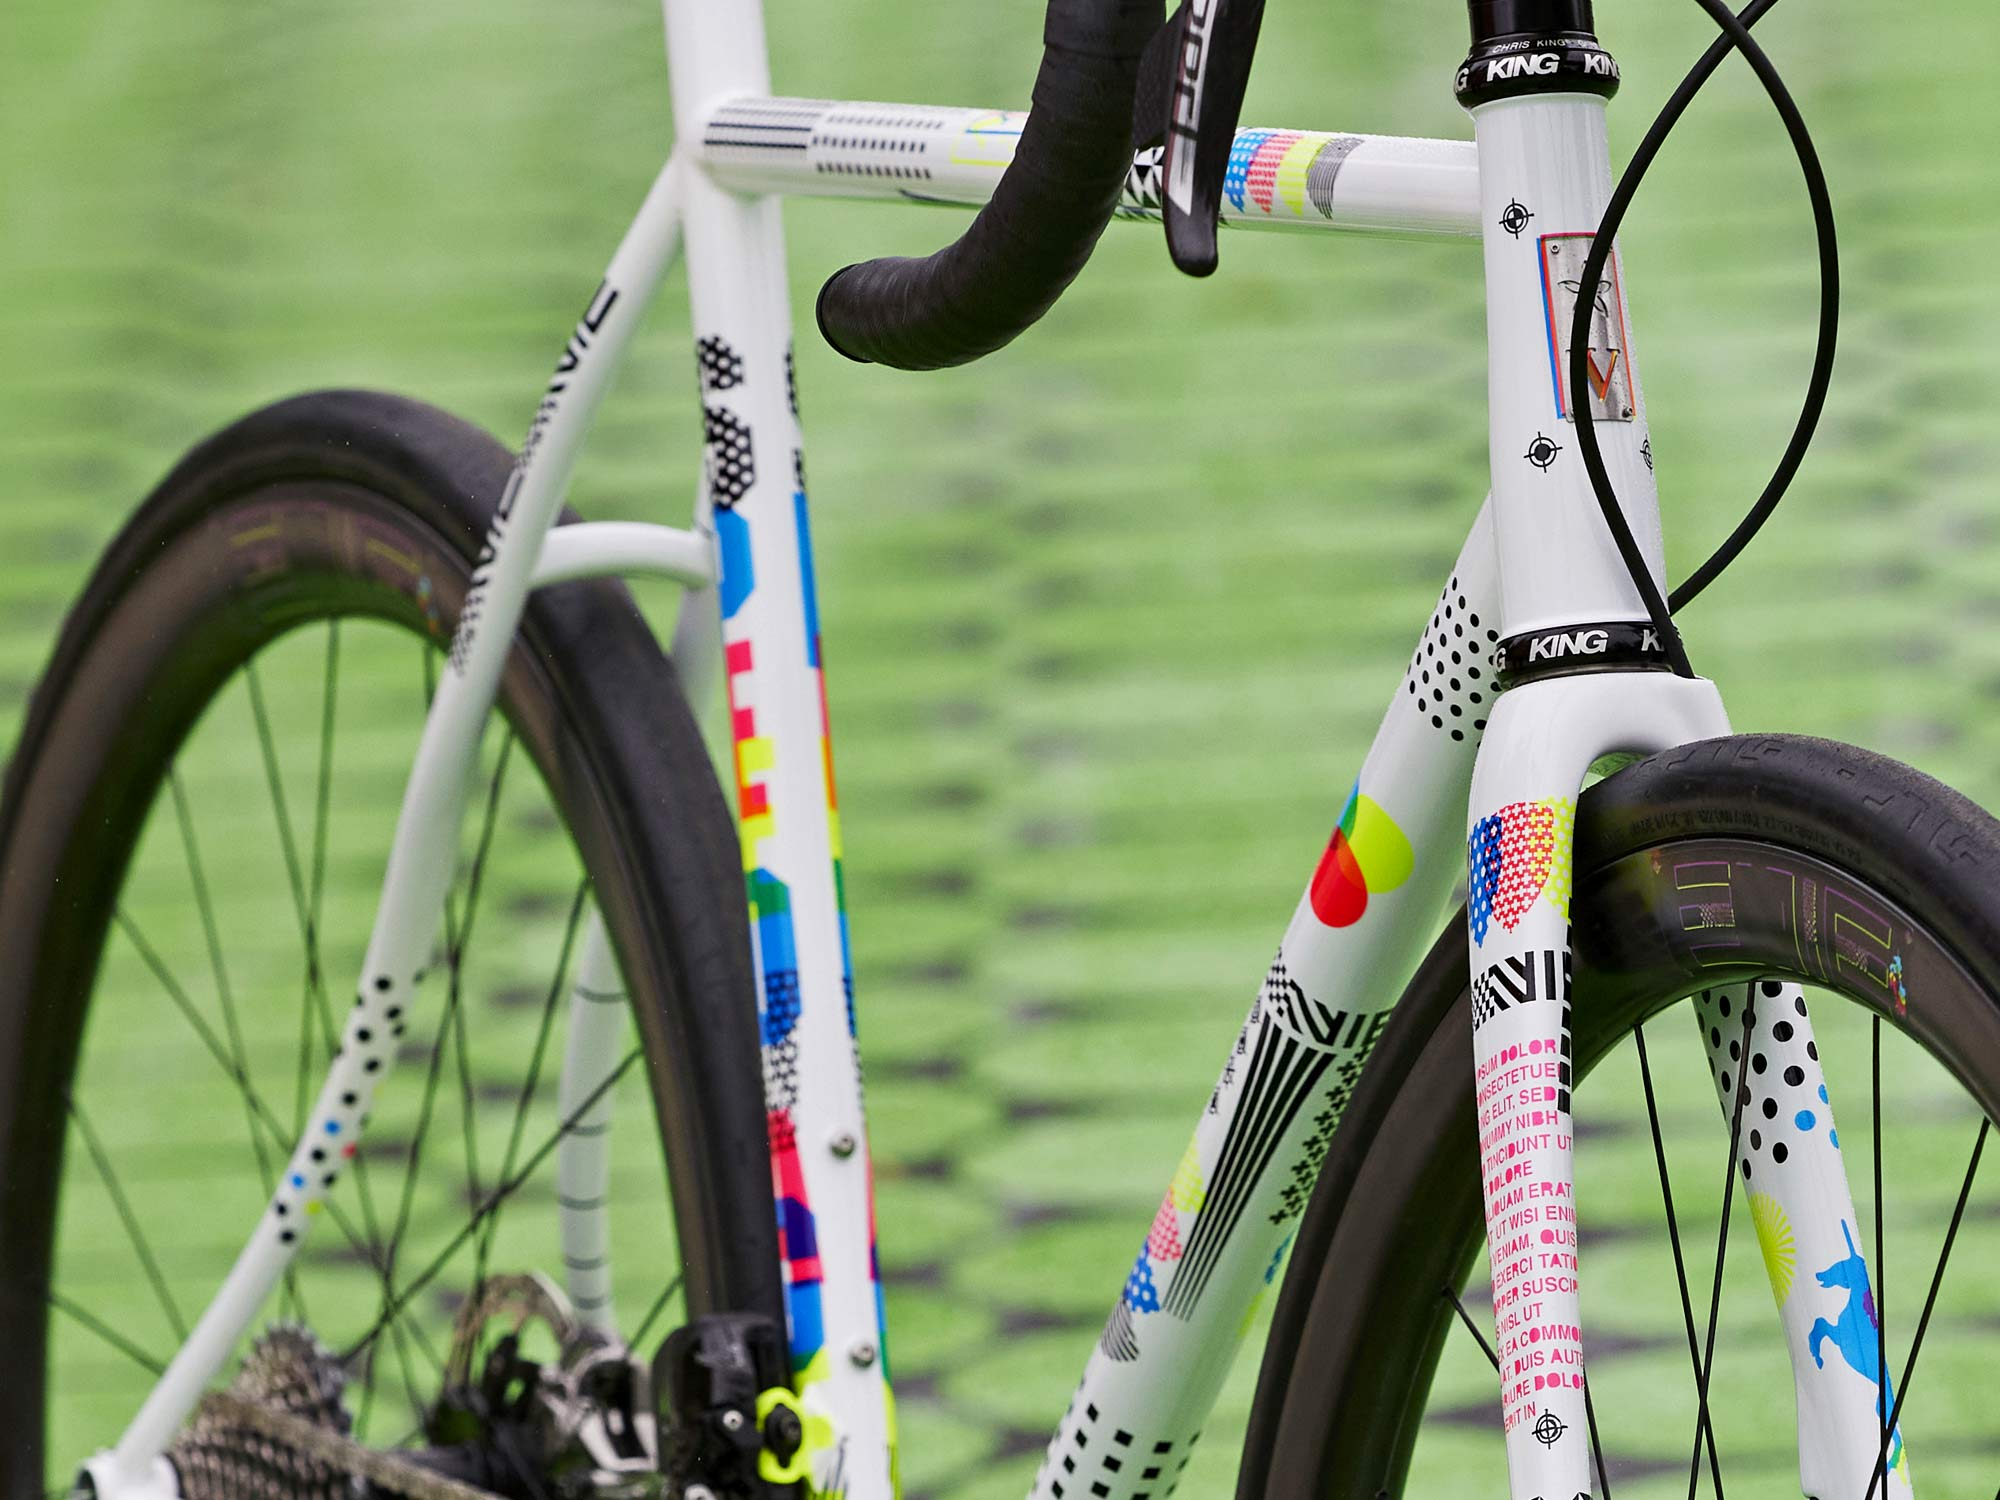 2021-2022 Speedvagen Surprise Me series, full-custom Vanilla workshop road bike with meticulous surprise paintjob inspired by printer's proofs, The Painters Proof CMYK edition